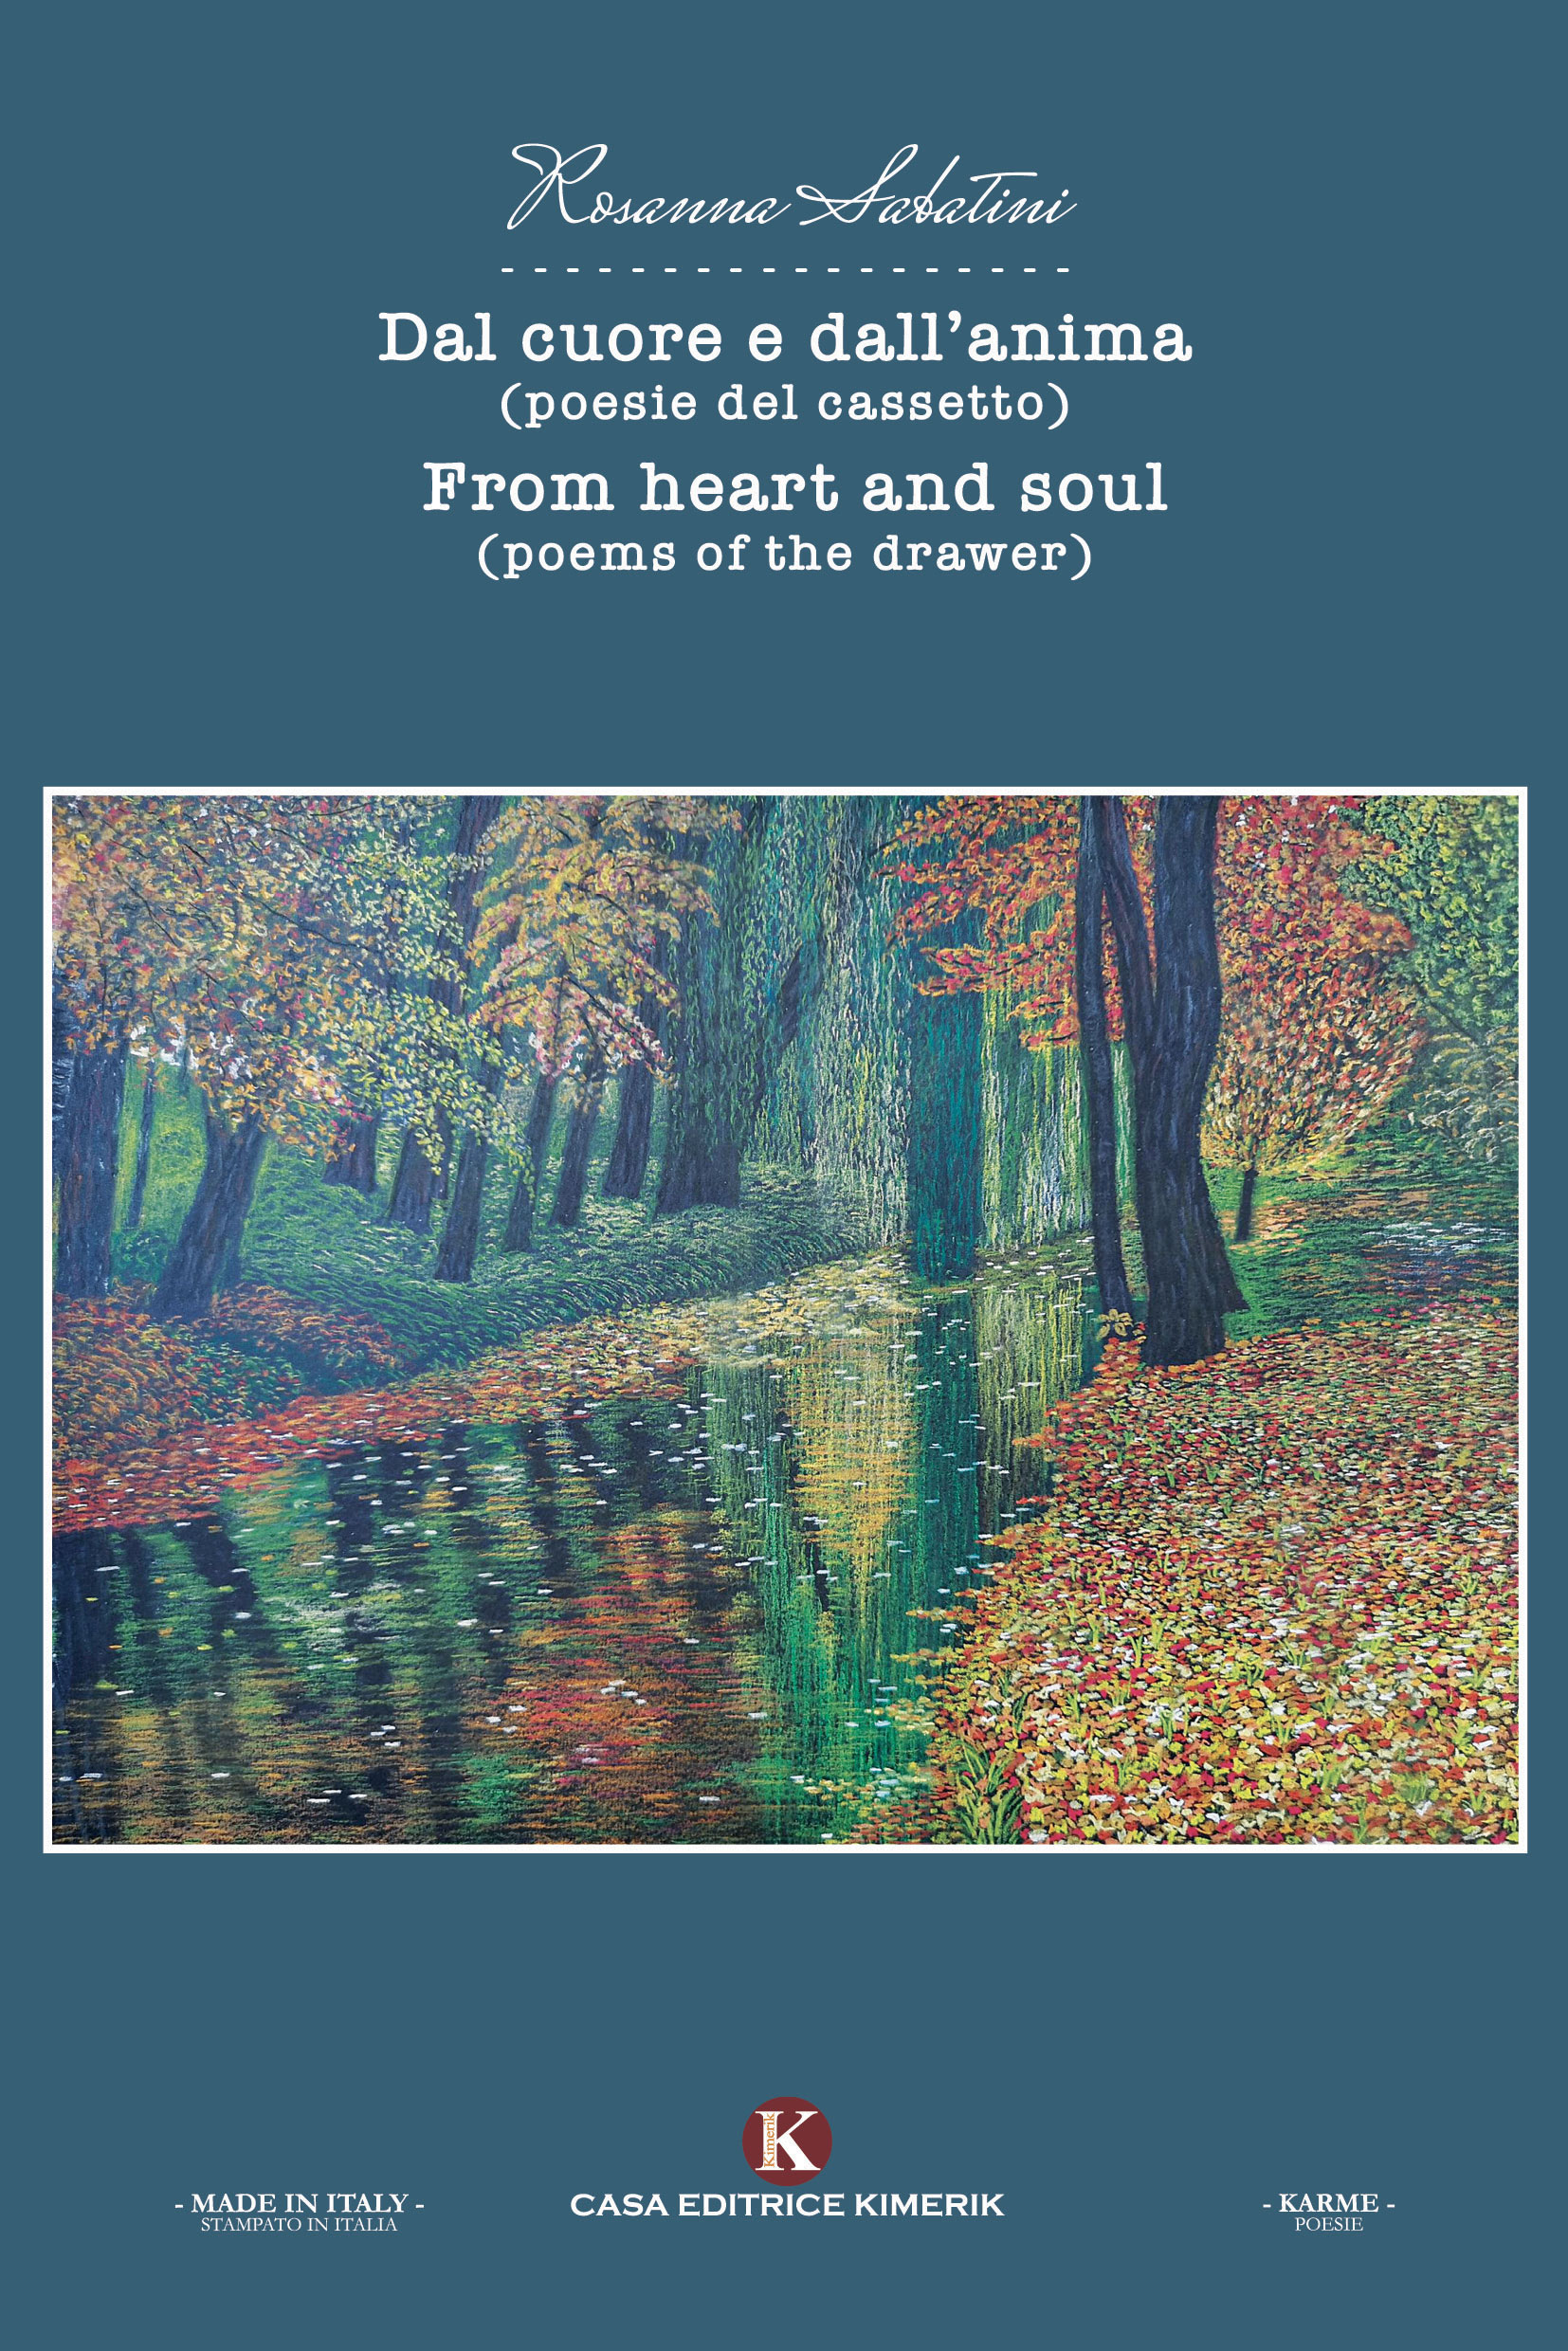 Dal cuore e dall'anima - From heart and soul